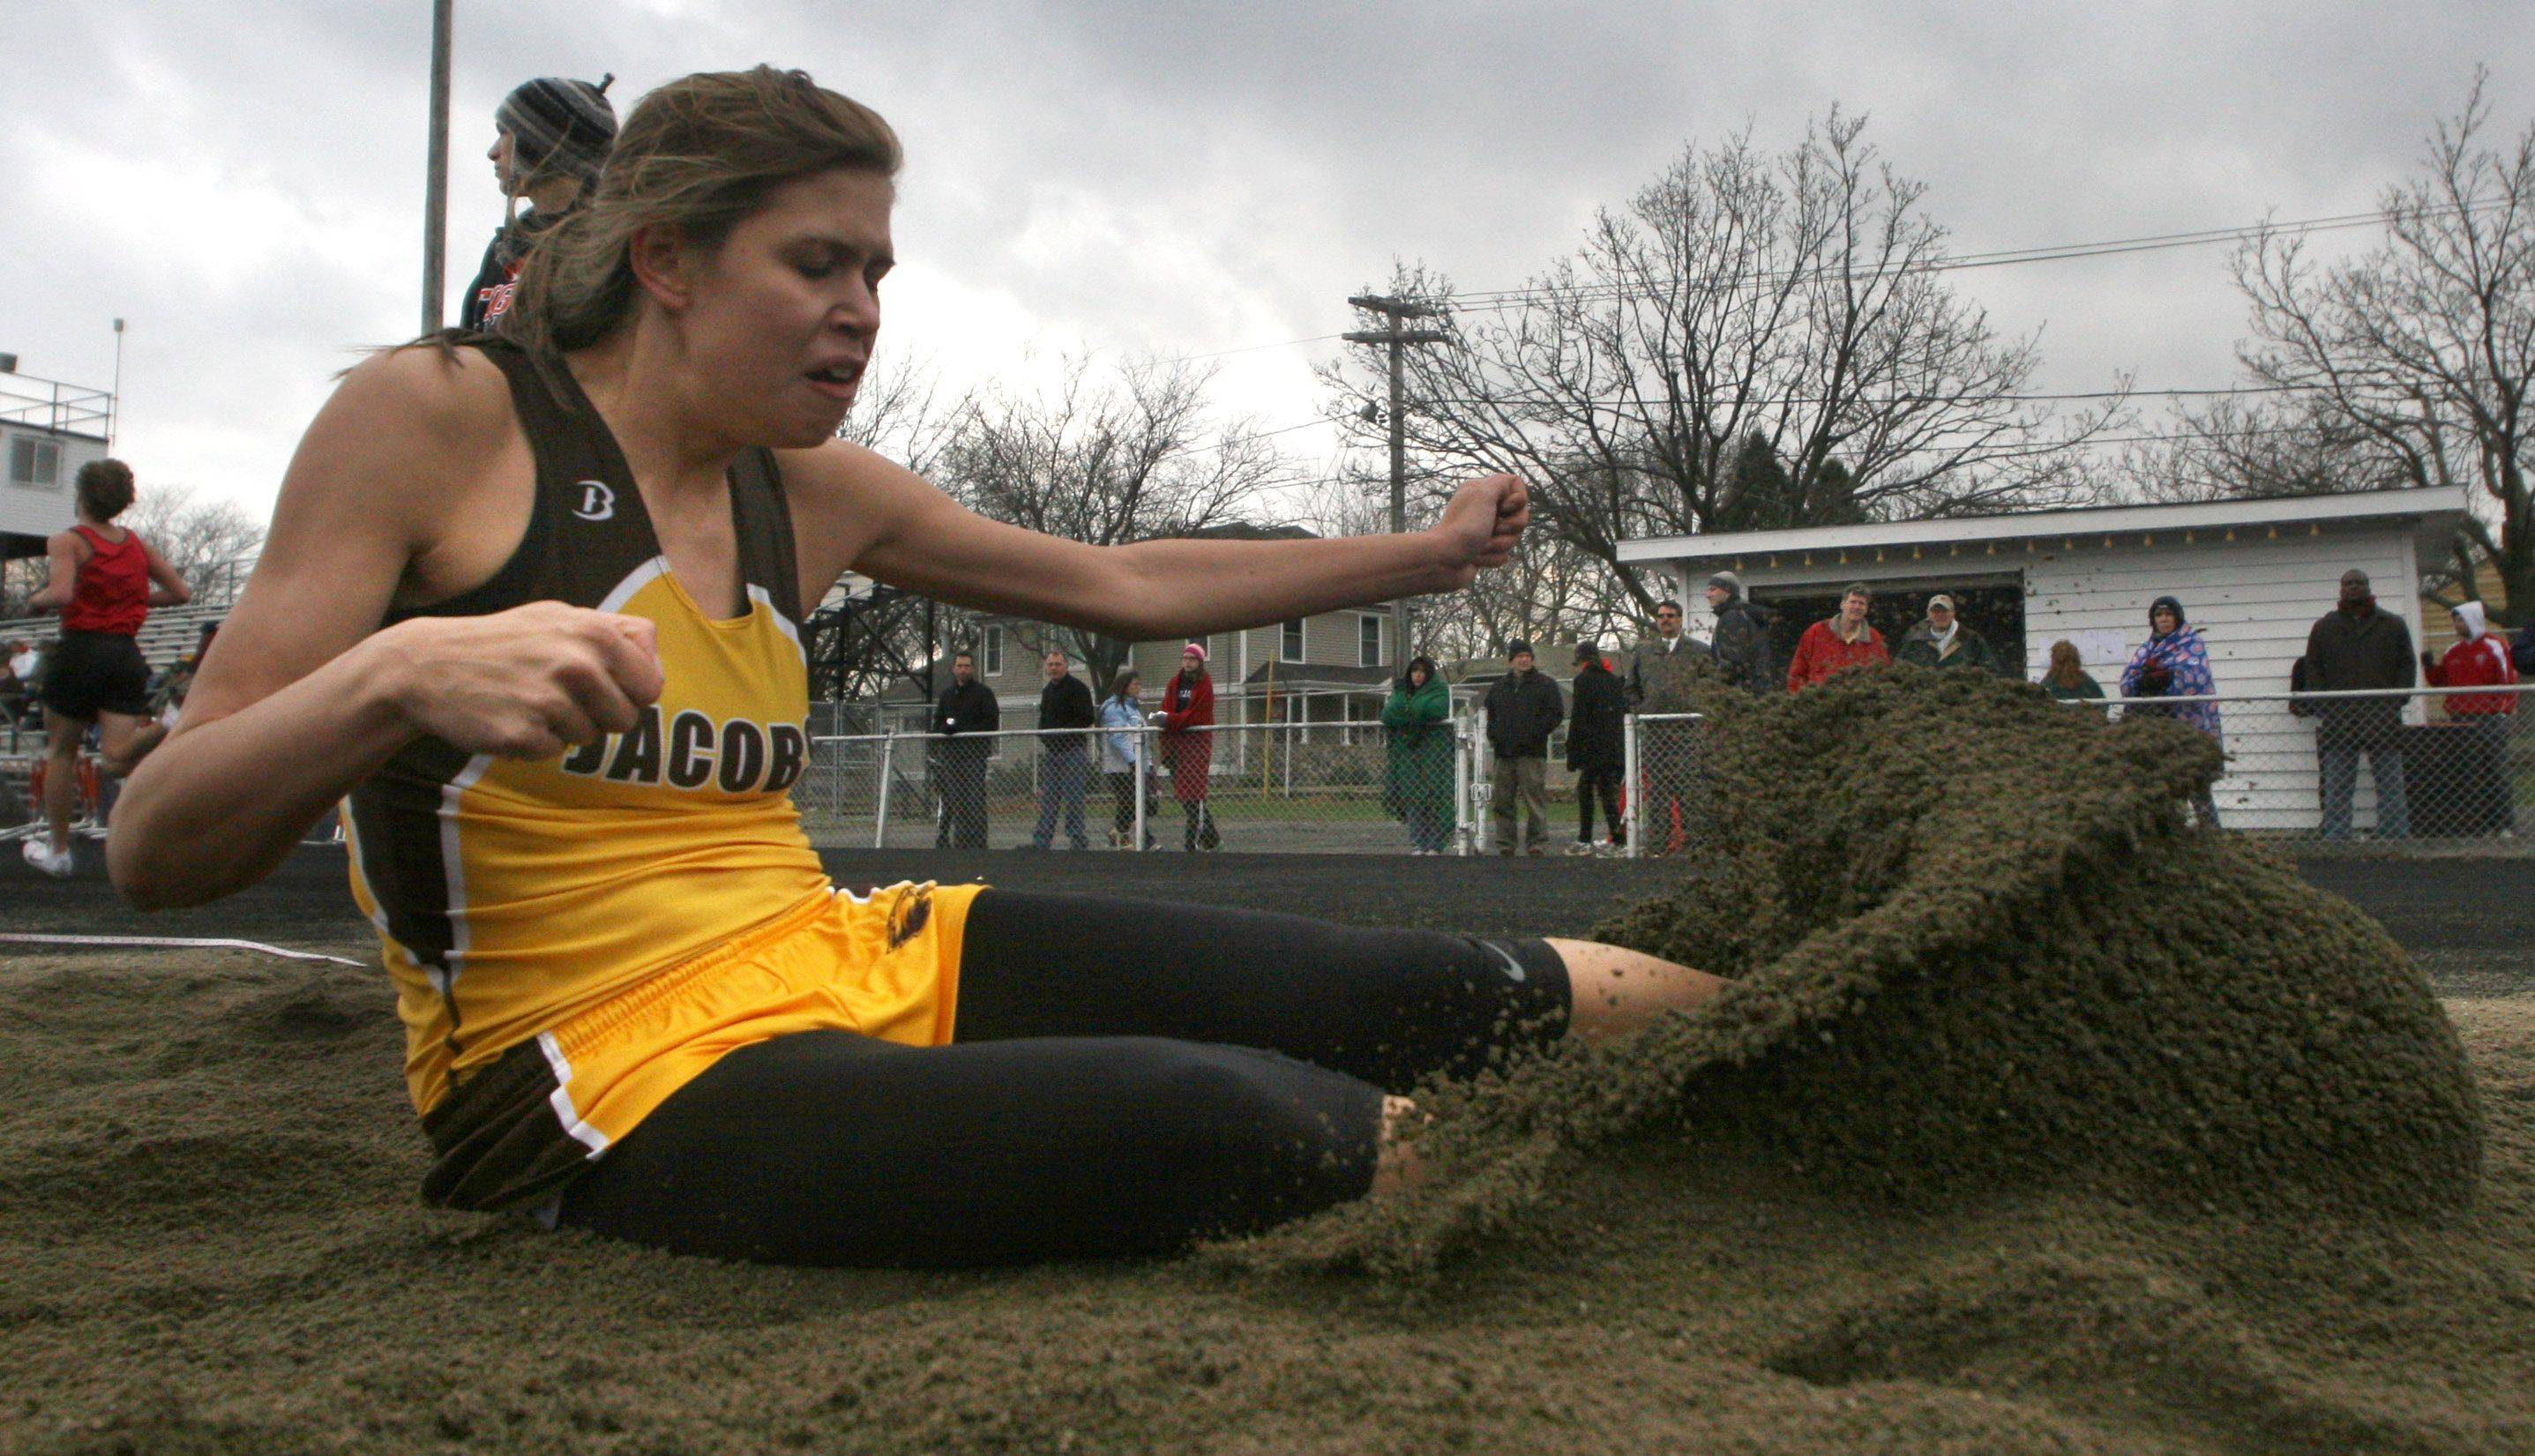 Jacobs' Allie Virgilio comes in for a landing in the triple jump finals during the McHenry County Track and Field Meet at Metcalf Field on the campus of Crystal Lake Central on Wednesday evening. Virgilio won the event with a jump of 36 feet, 1 inch.